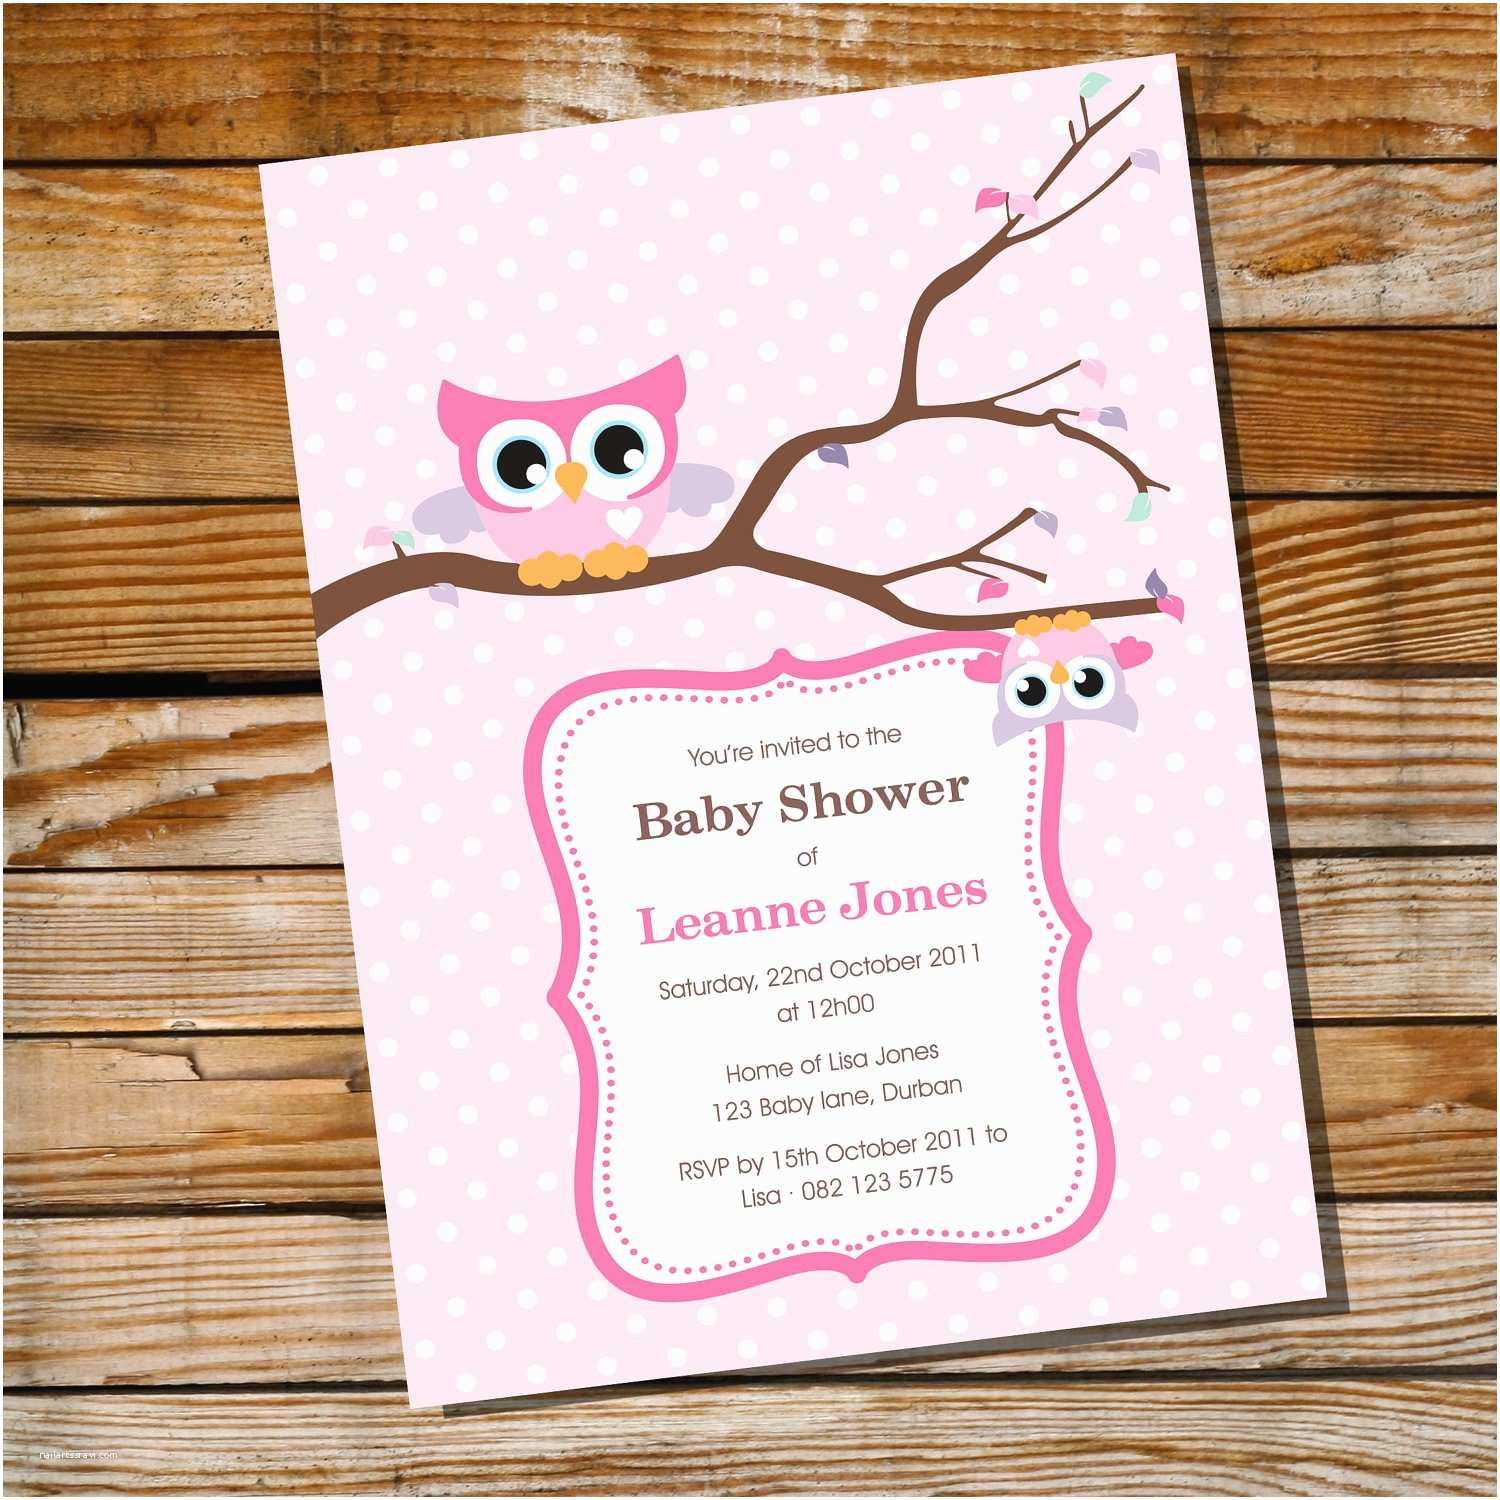 Owl themed Baby Shower Invitations Cute Baby Owl Invitation for A Girl Baby Shower Instantly